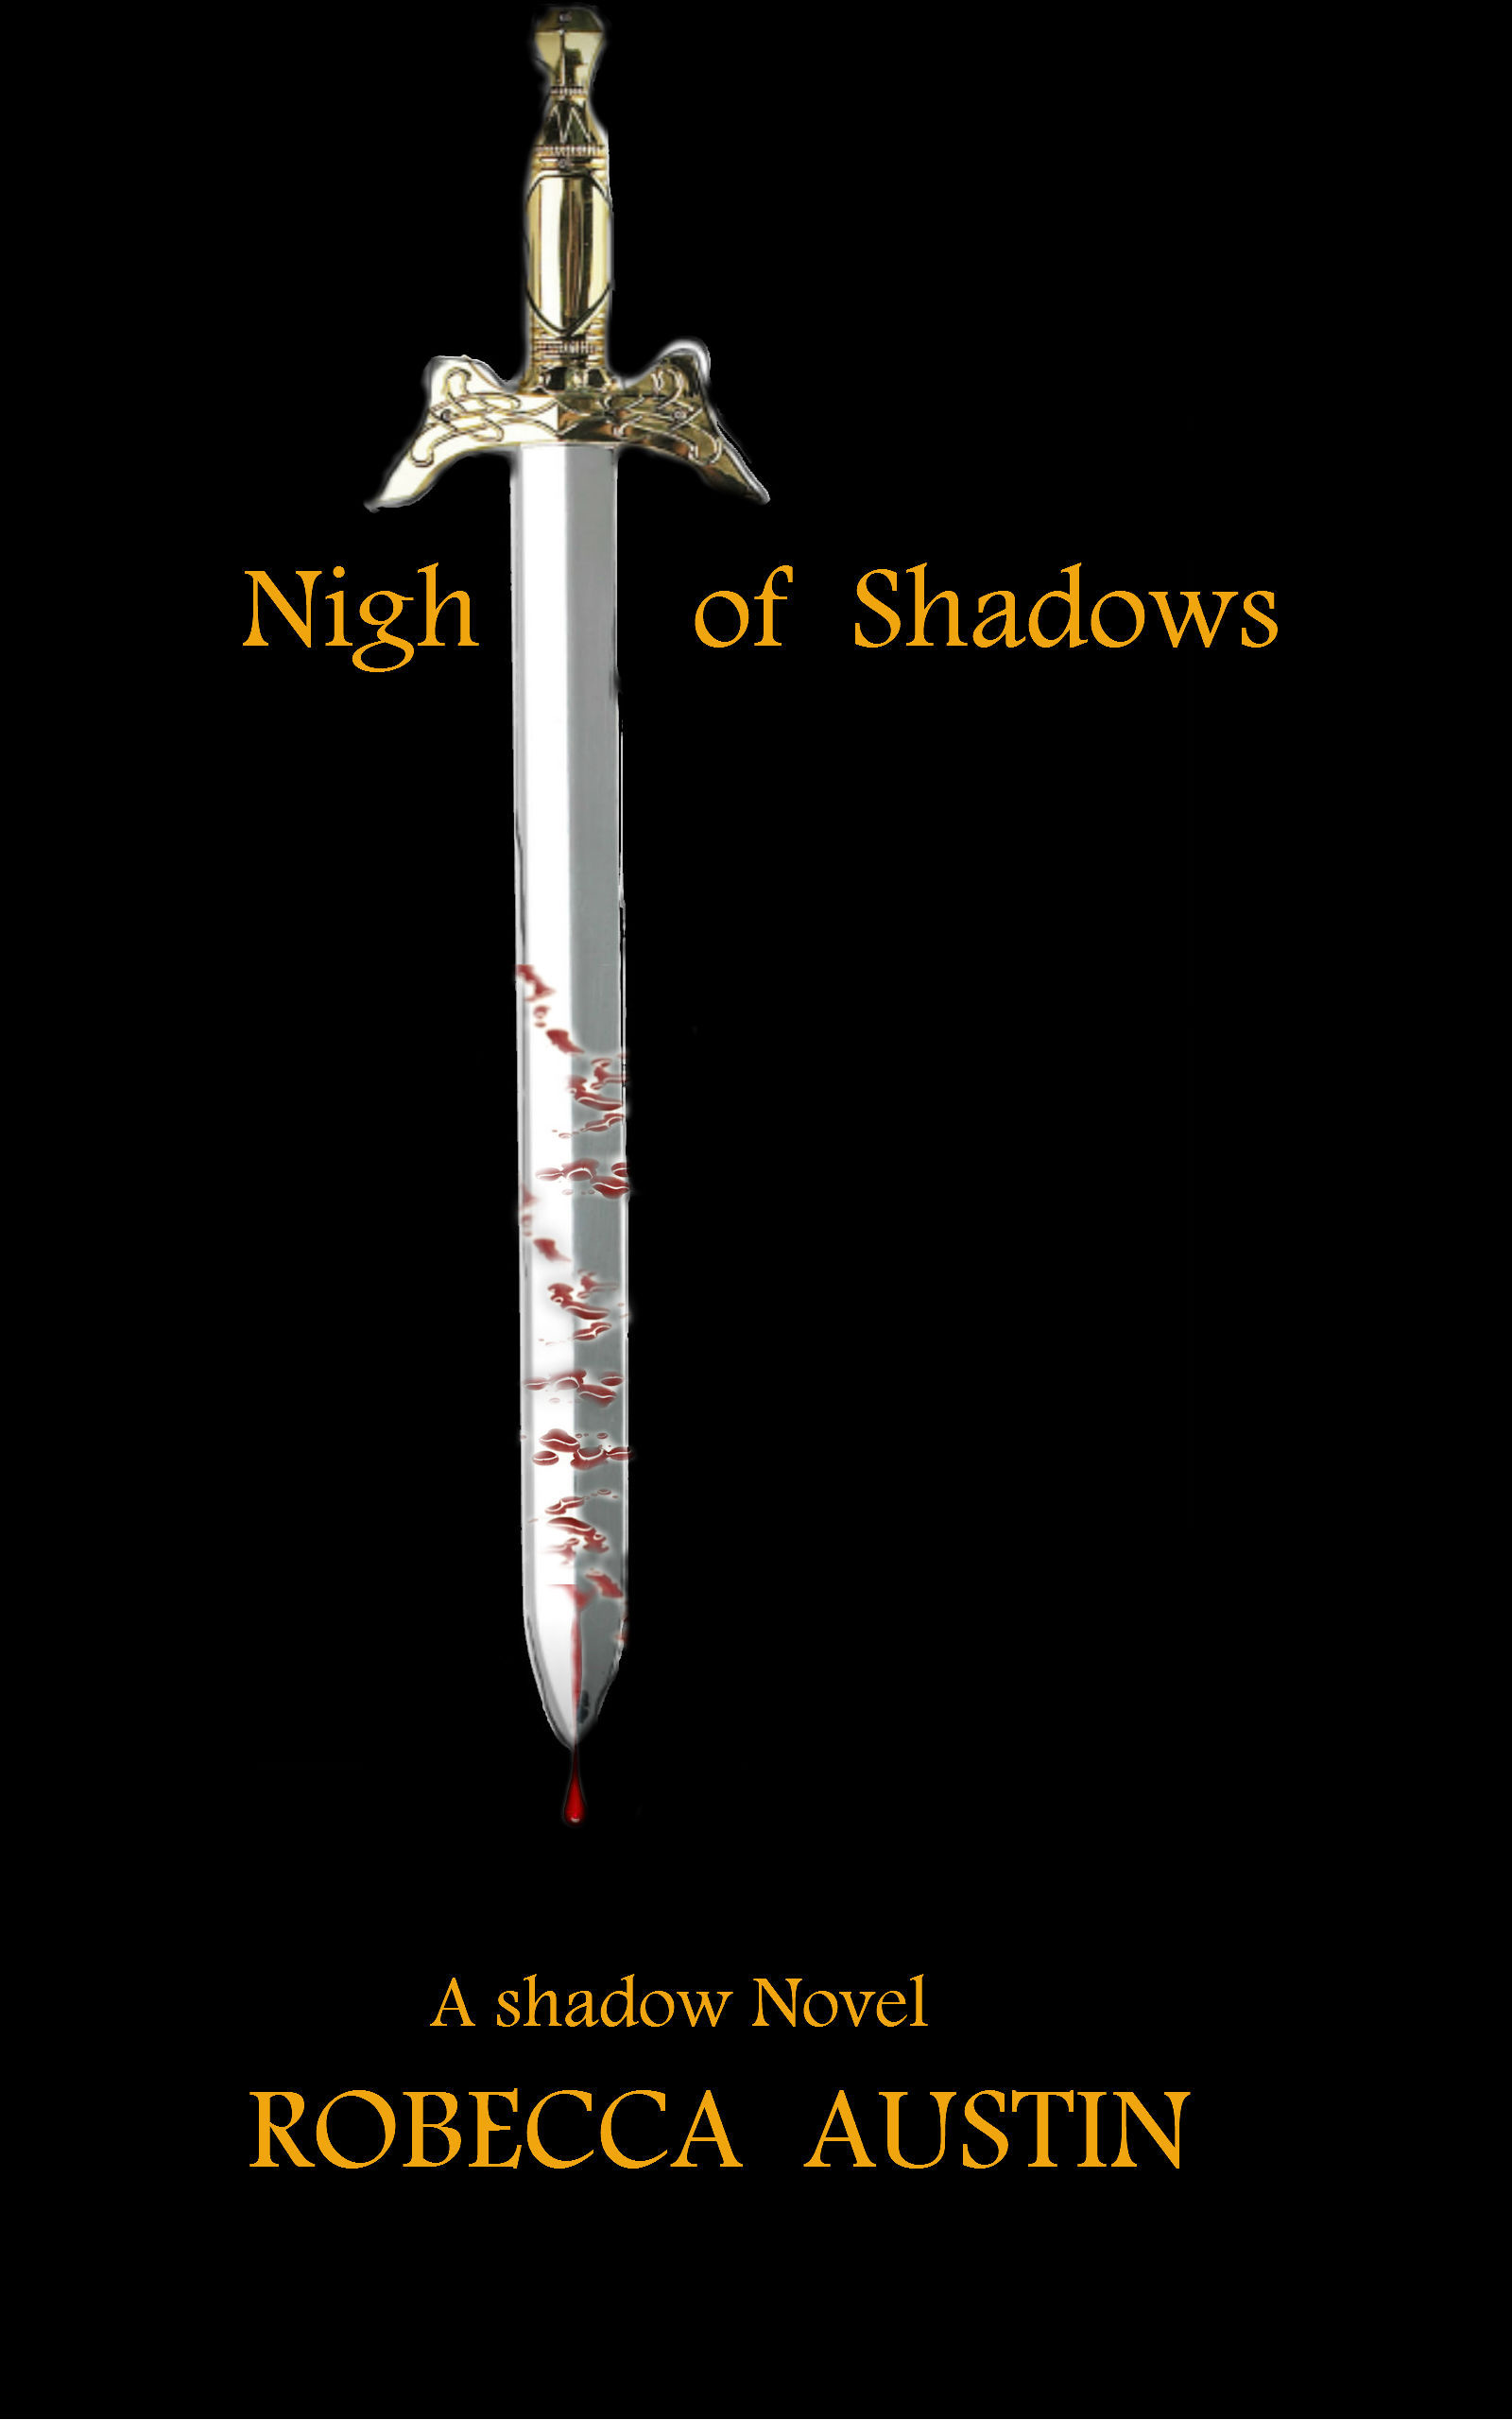 Night of Shadows